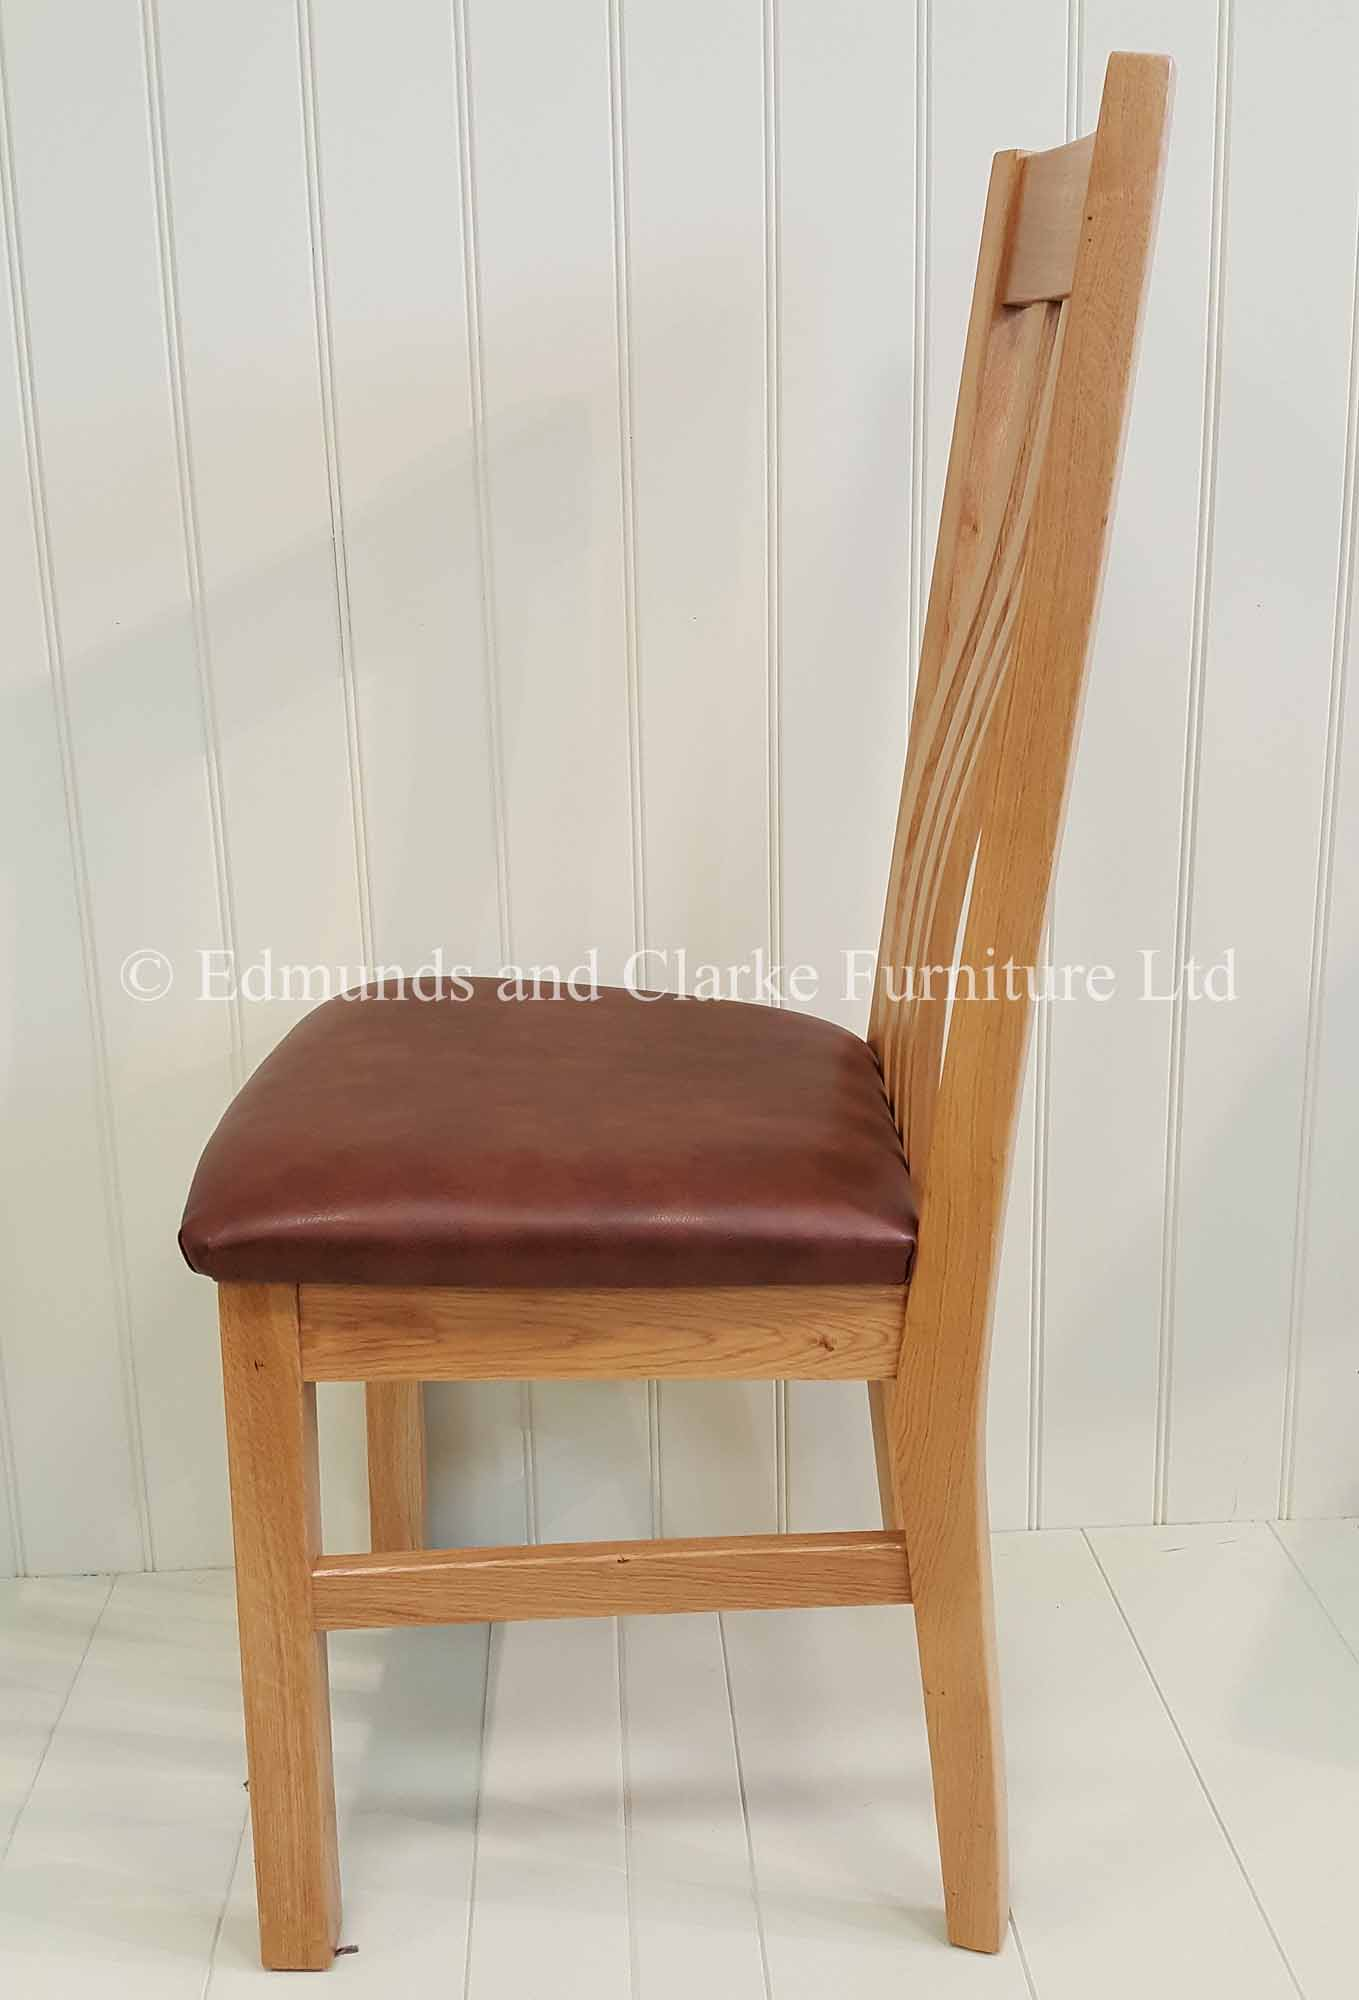 Harrington oak dining chair with leather pad